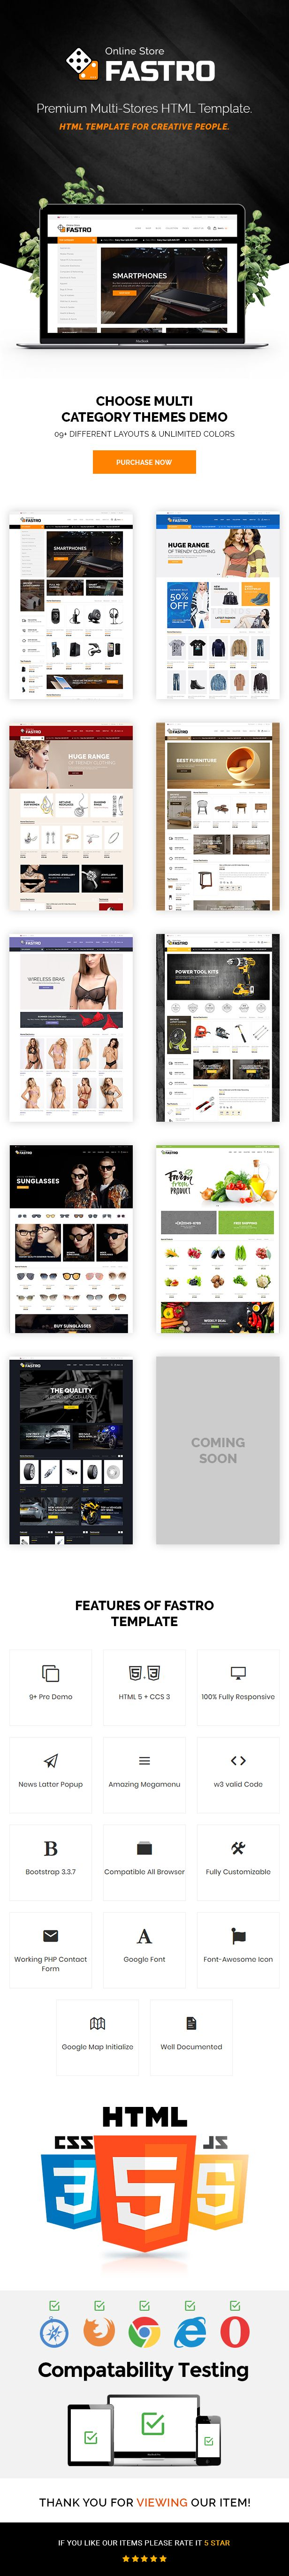 Fastro is a clean and high quality creative HTML5 template. Build with latest Boostrap v3.3.7. You can easily present your ideas with perfect stylish. well commented html and css code for user friendly. Fully responsive and compatible with all latest browser. We have included 9 pre defined layouts for home page & 90+ HTML Files